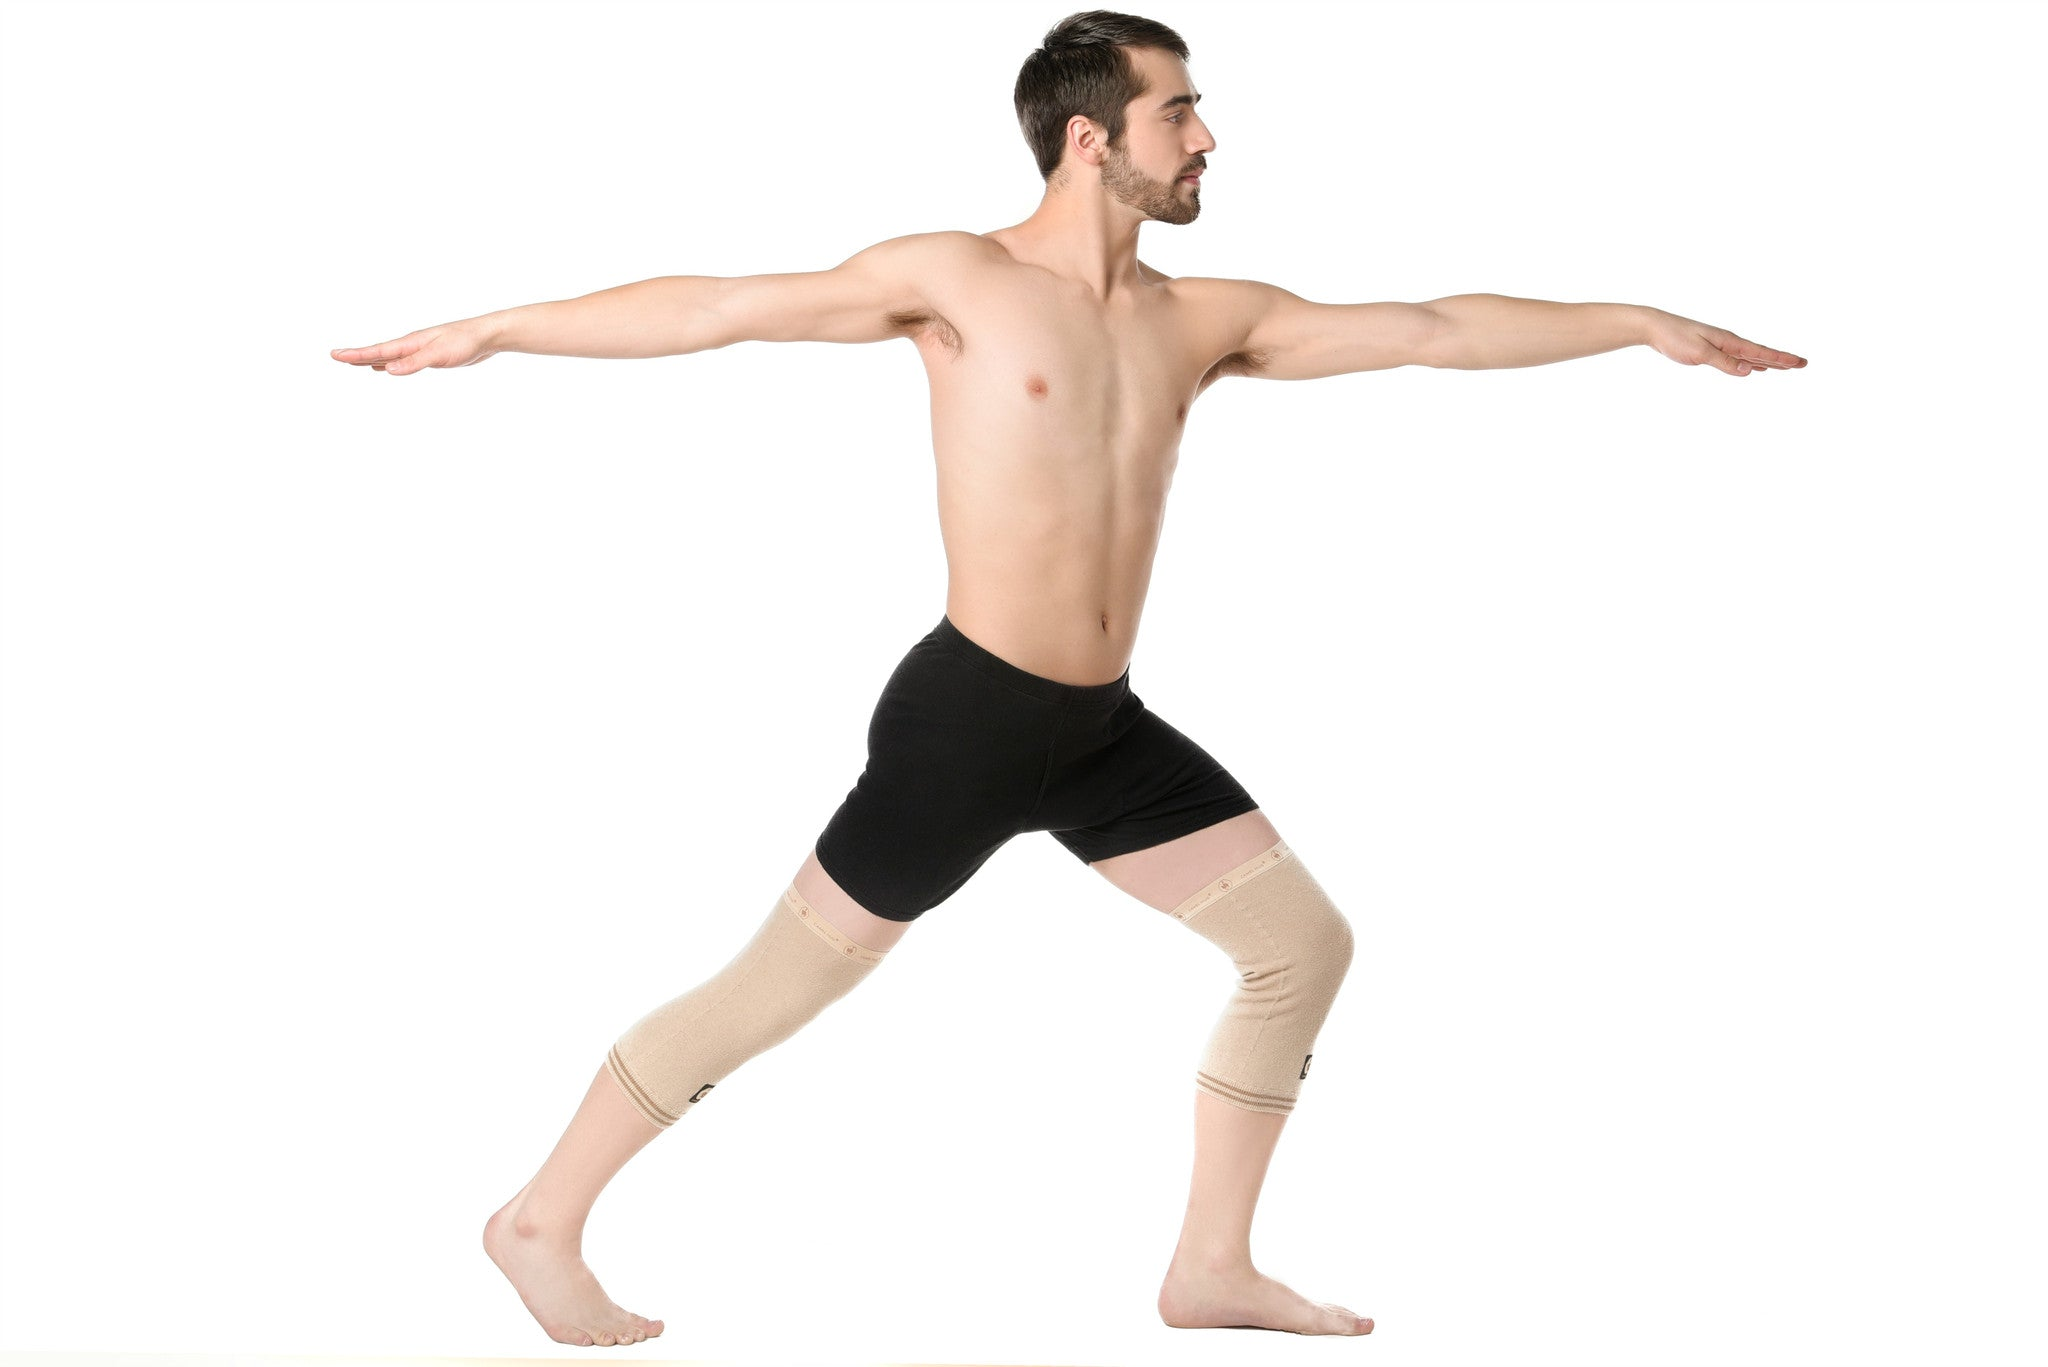 3bd7e28c94ada9 ... Camel Hug knee compression sleeves promote mobility while still  providing relief and comfort · The ...